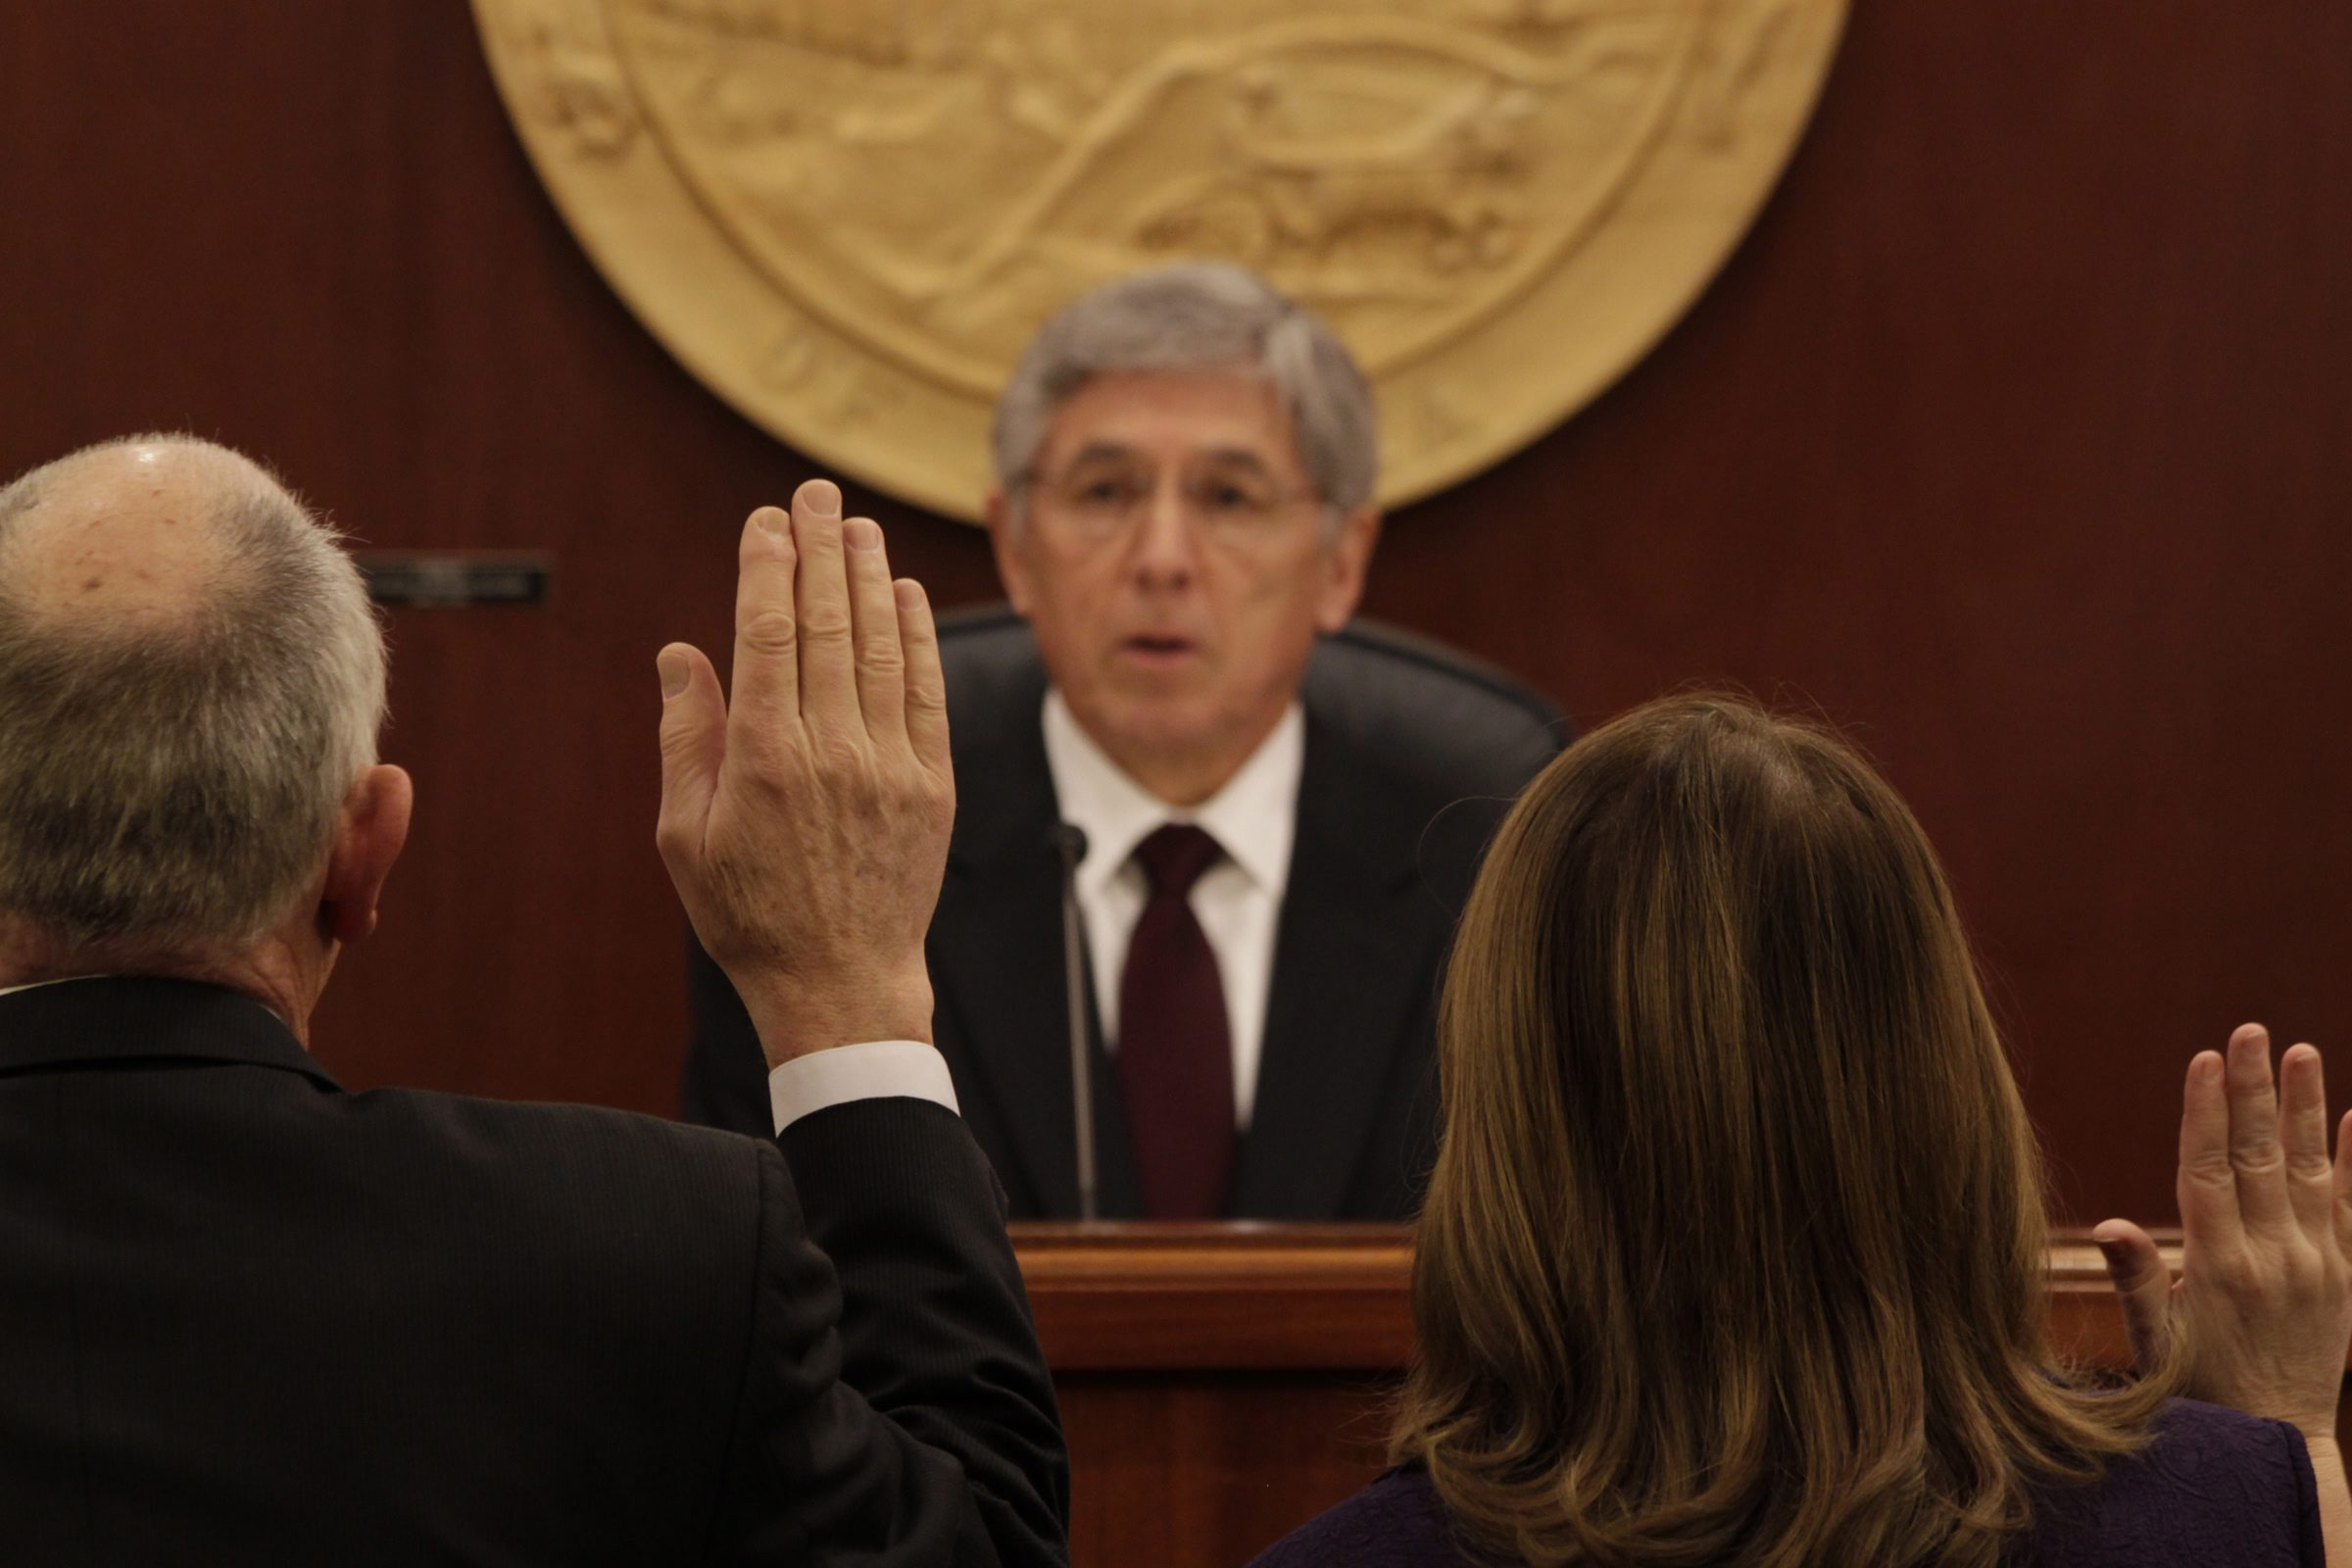 Lt. Gov. Byron Mallott issues the oath of office to members of the Alaska House of Representatives on Tuesday, Jan. 20, 2015 during the opening of the 29th Alaska Legislature. (James Brooks/Juneau Empire/AP Photo)